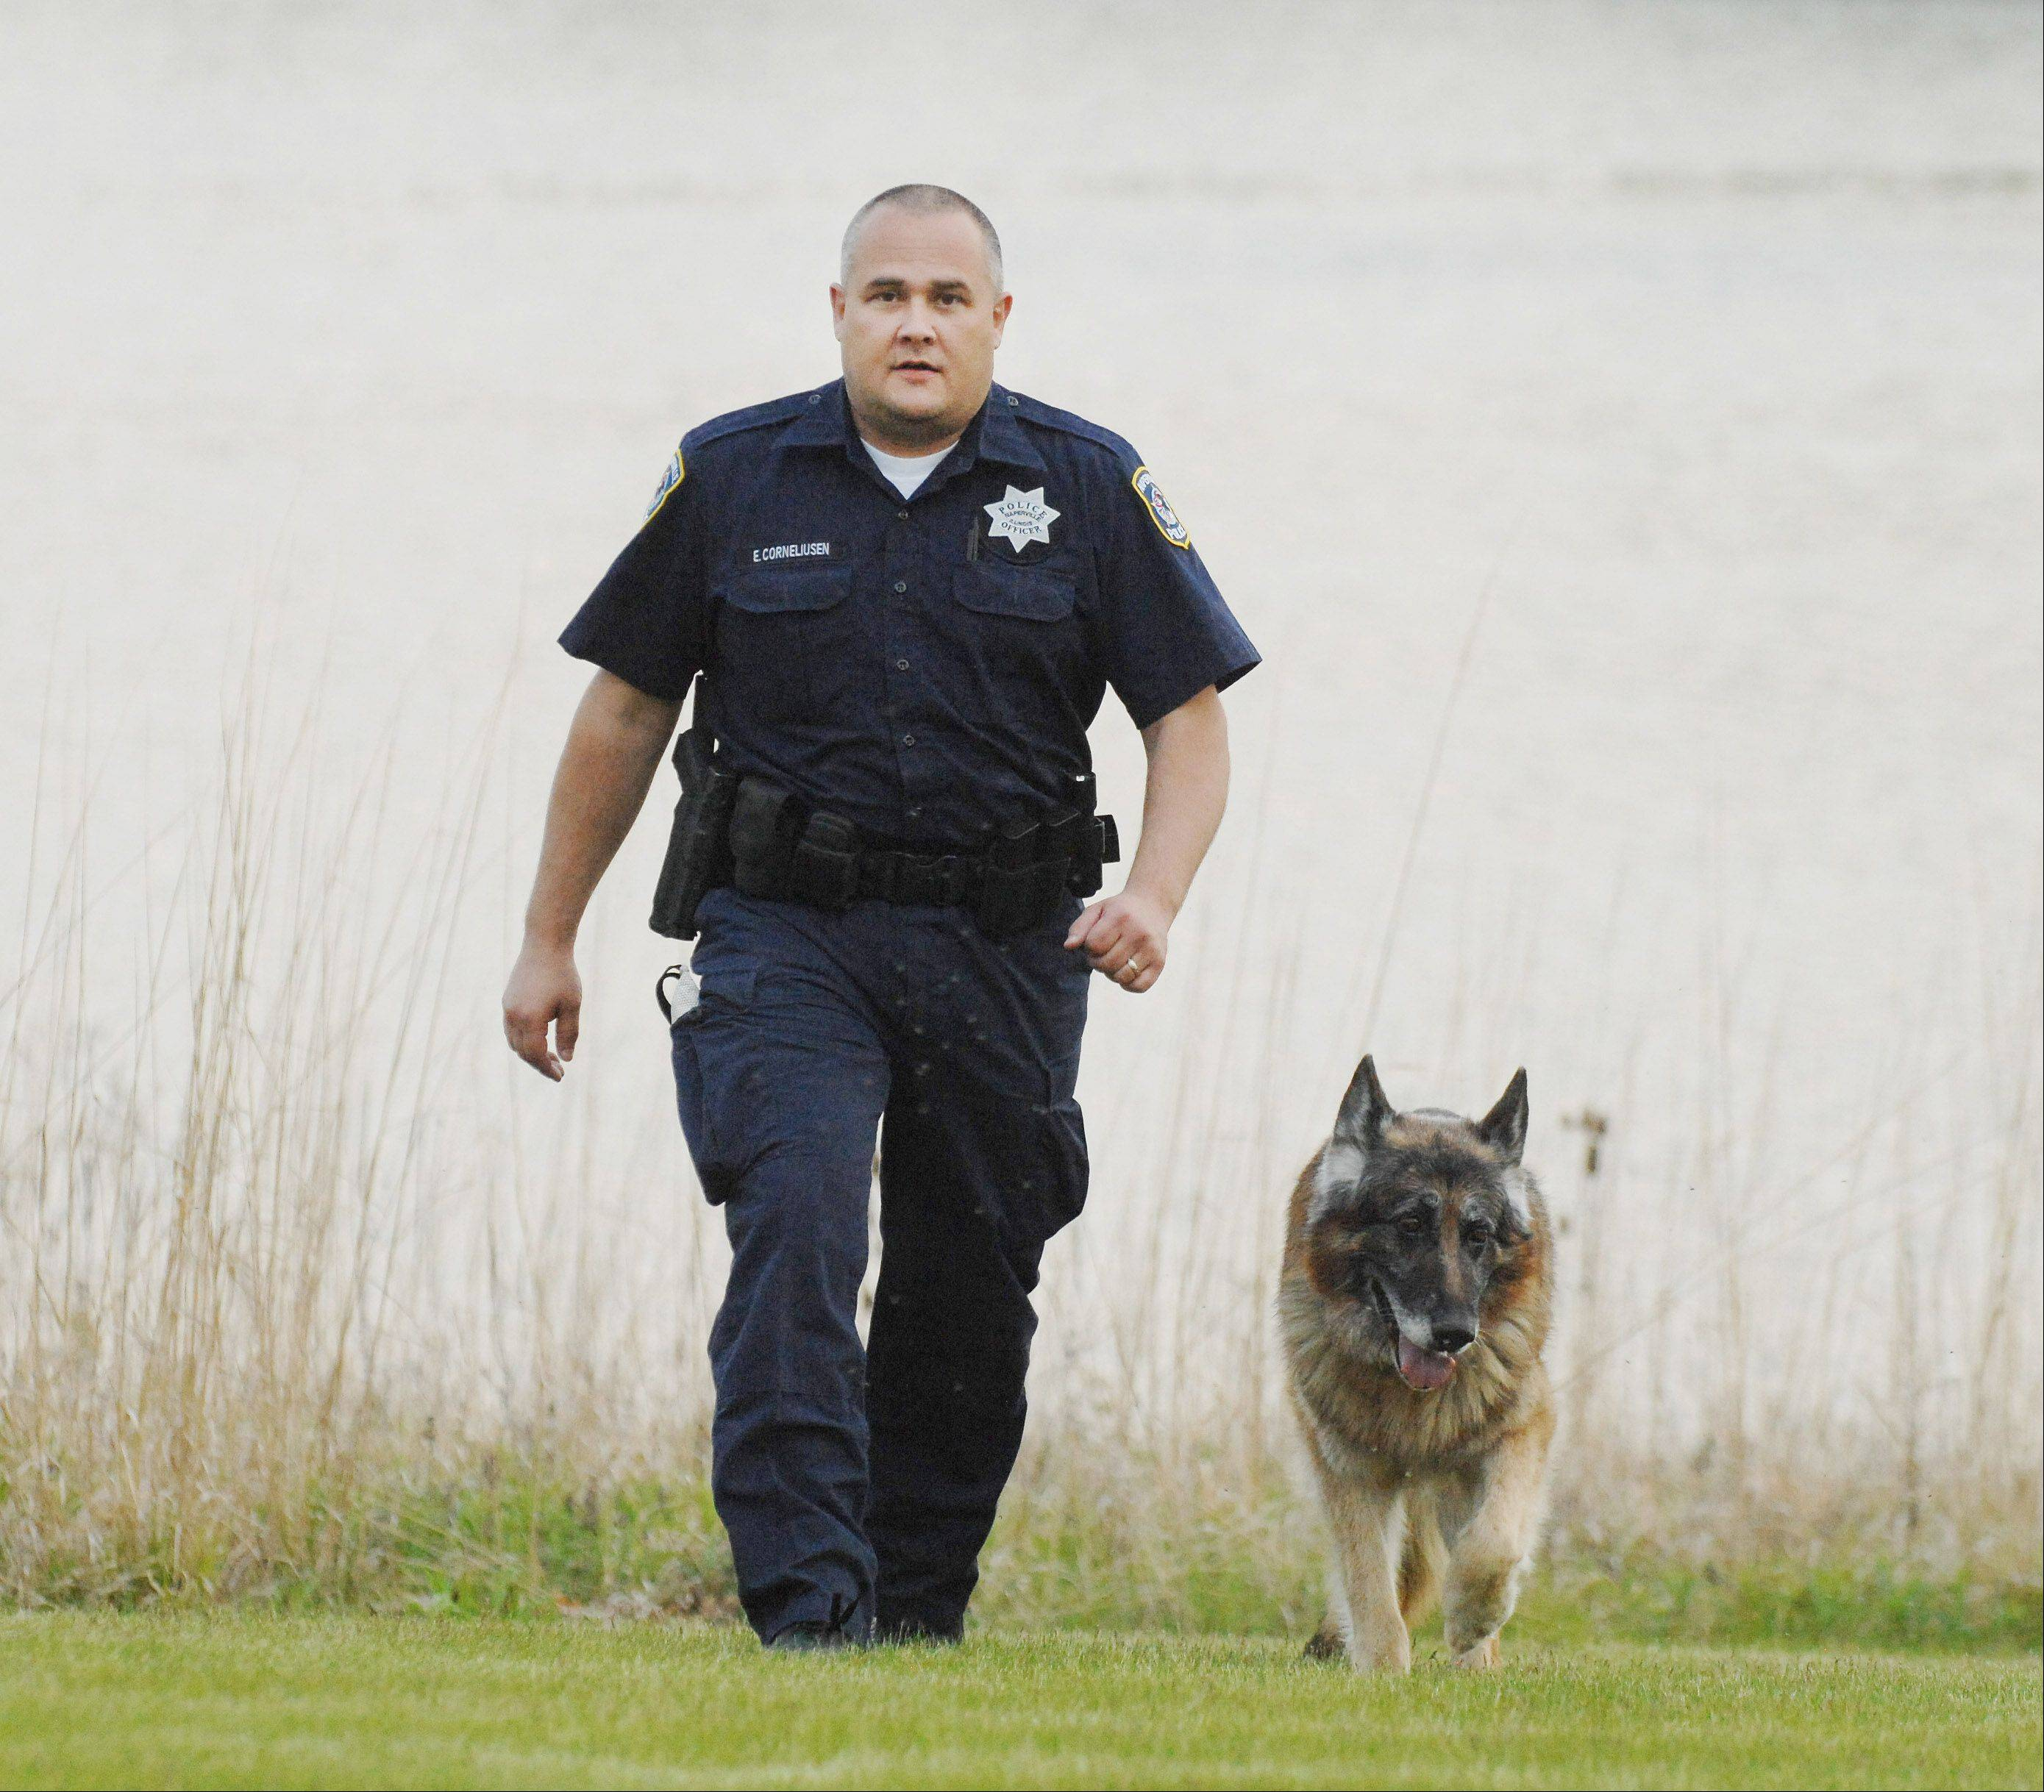 Naperville police officer Eddie Corneliusen and his partner, Kairo, on a walk. The 11-year-old Kairo retired this year.